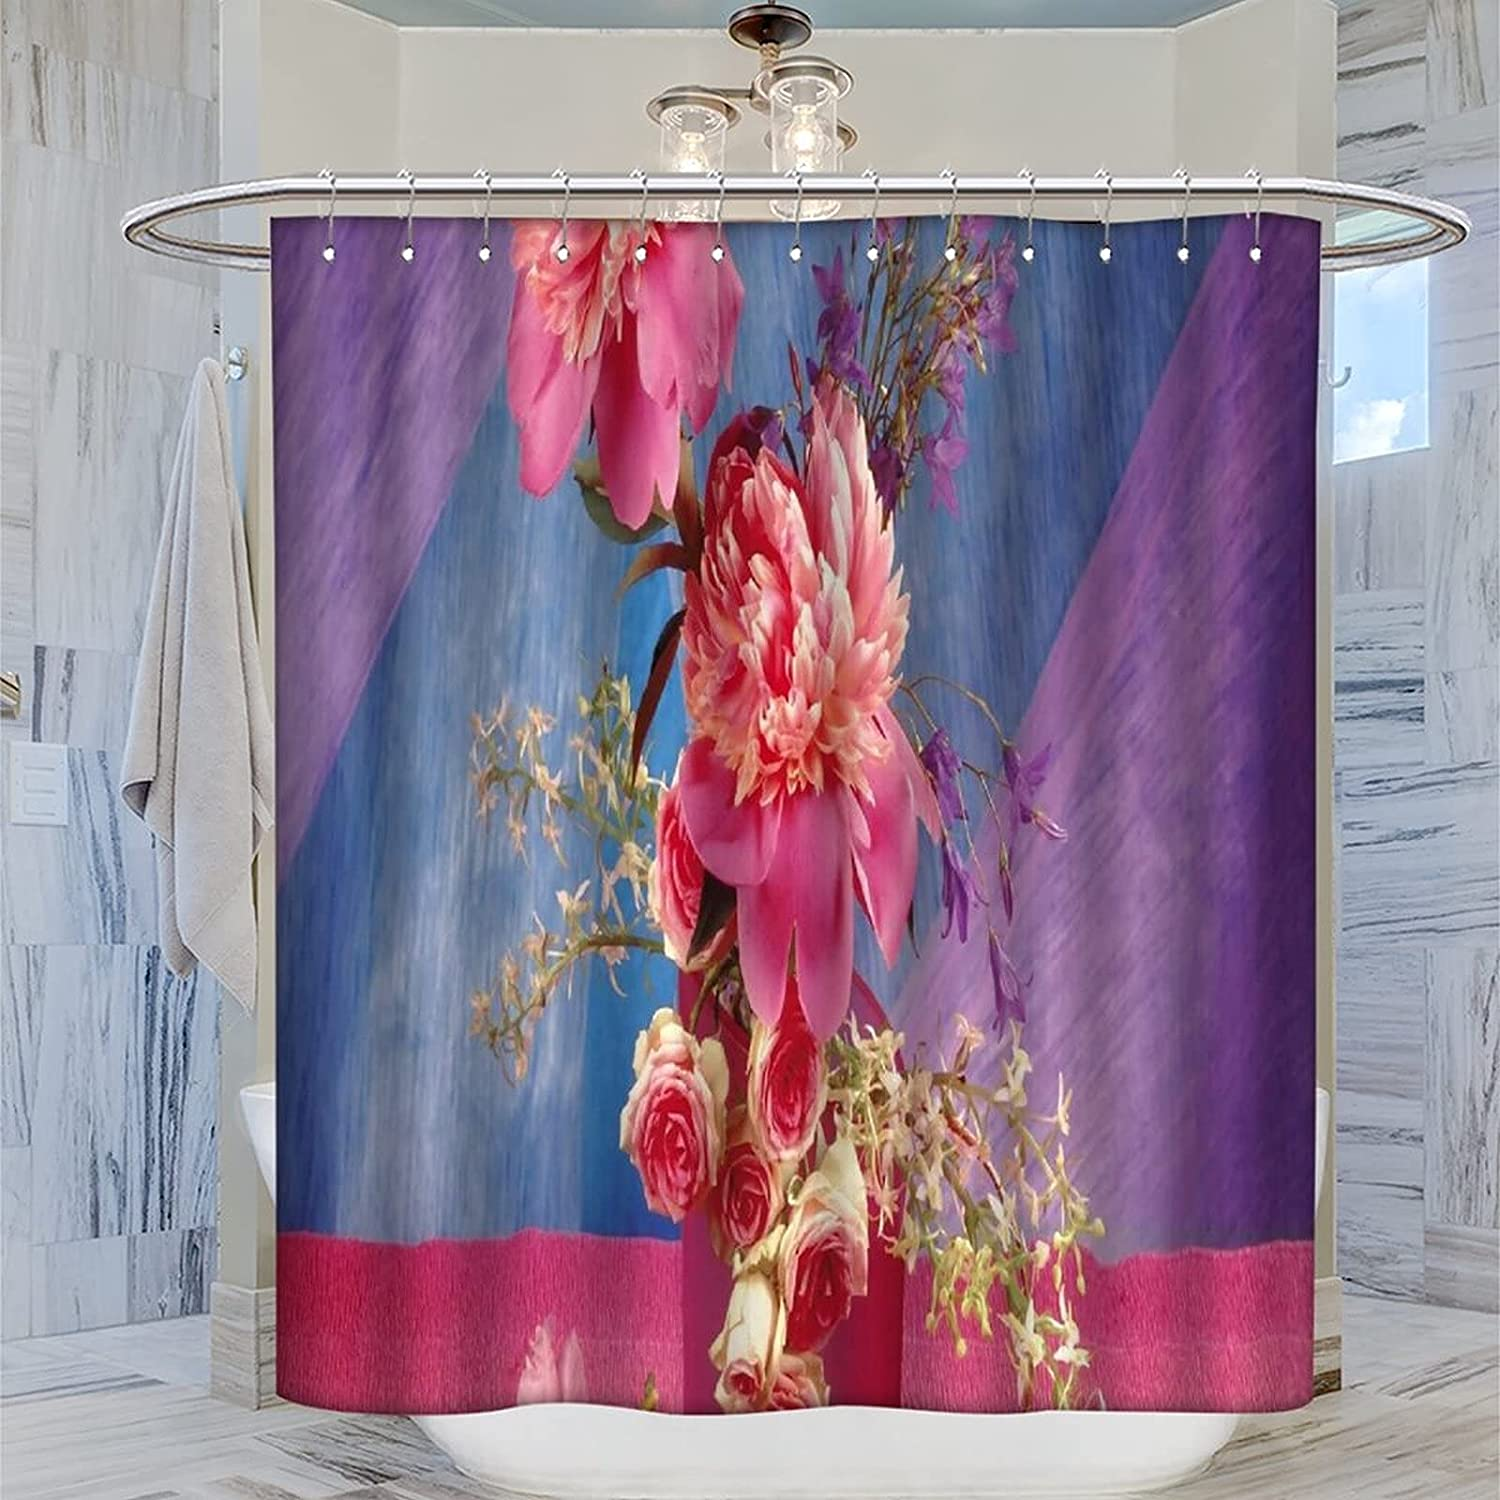 Colorful Flowers Popular Selling rankings Shower Be super welcome Curt Curtain Bathroom Decorative